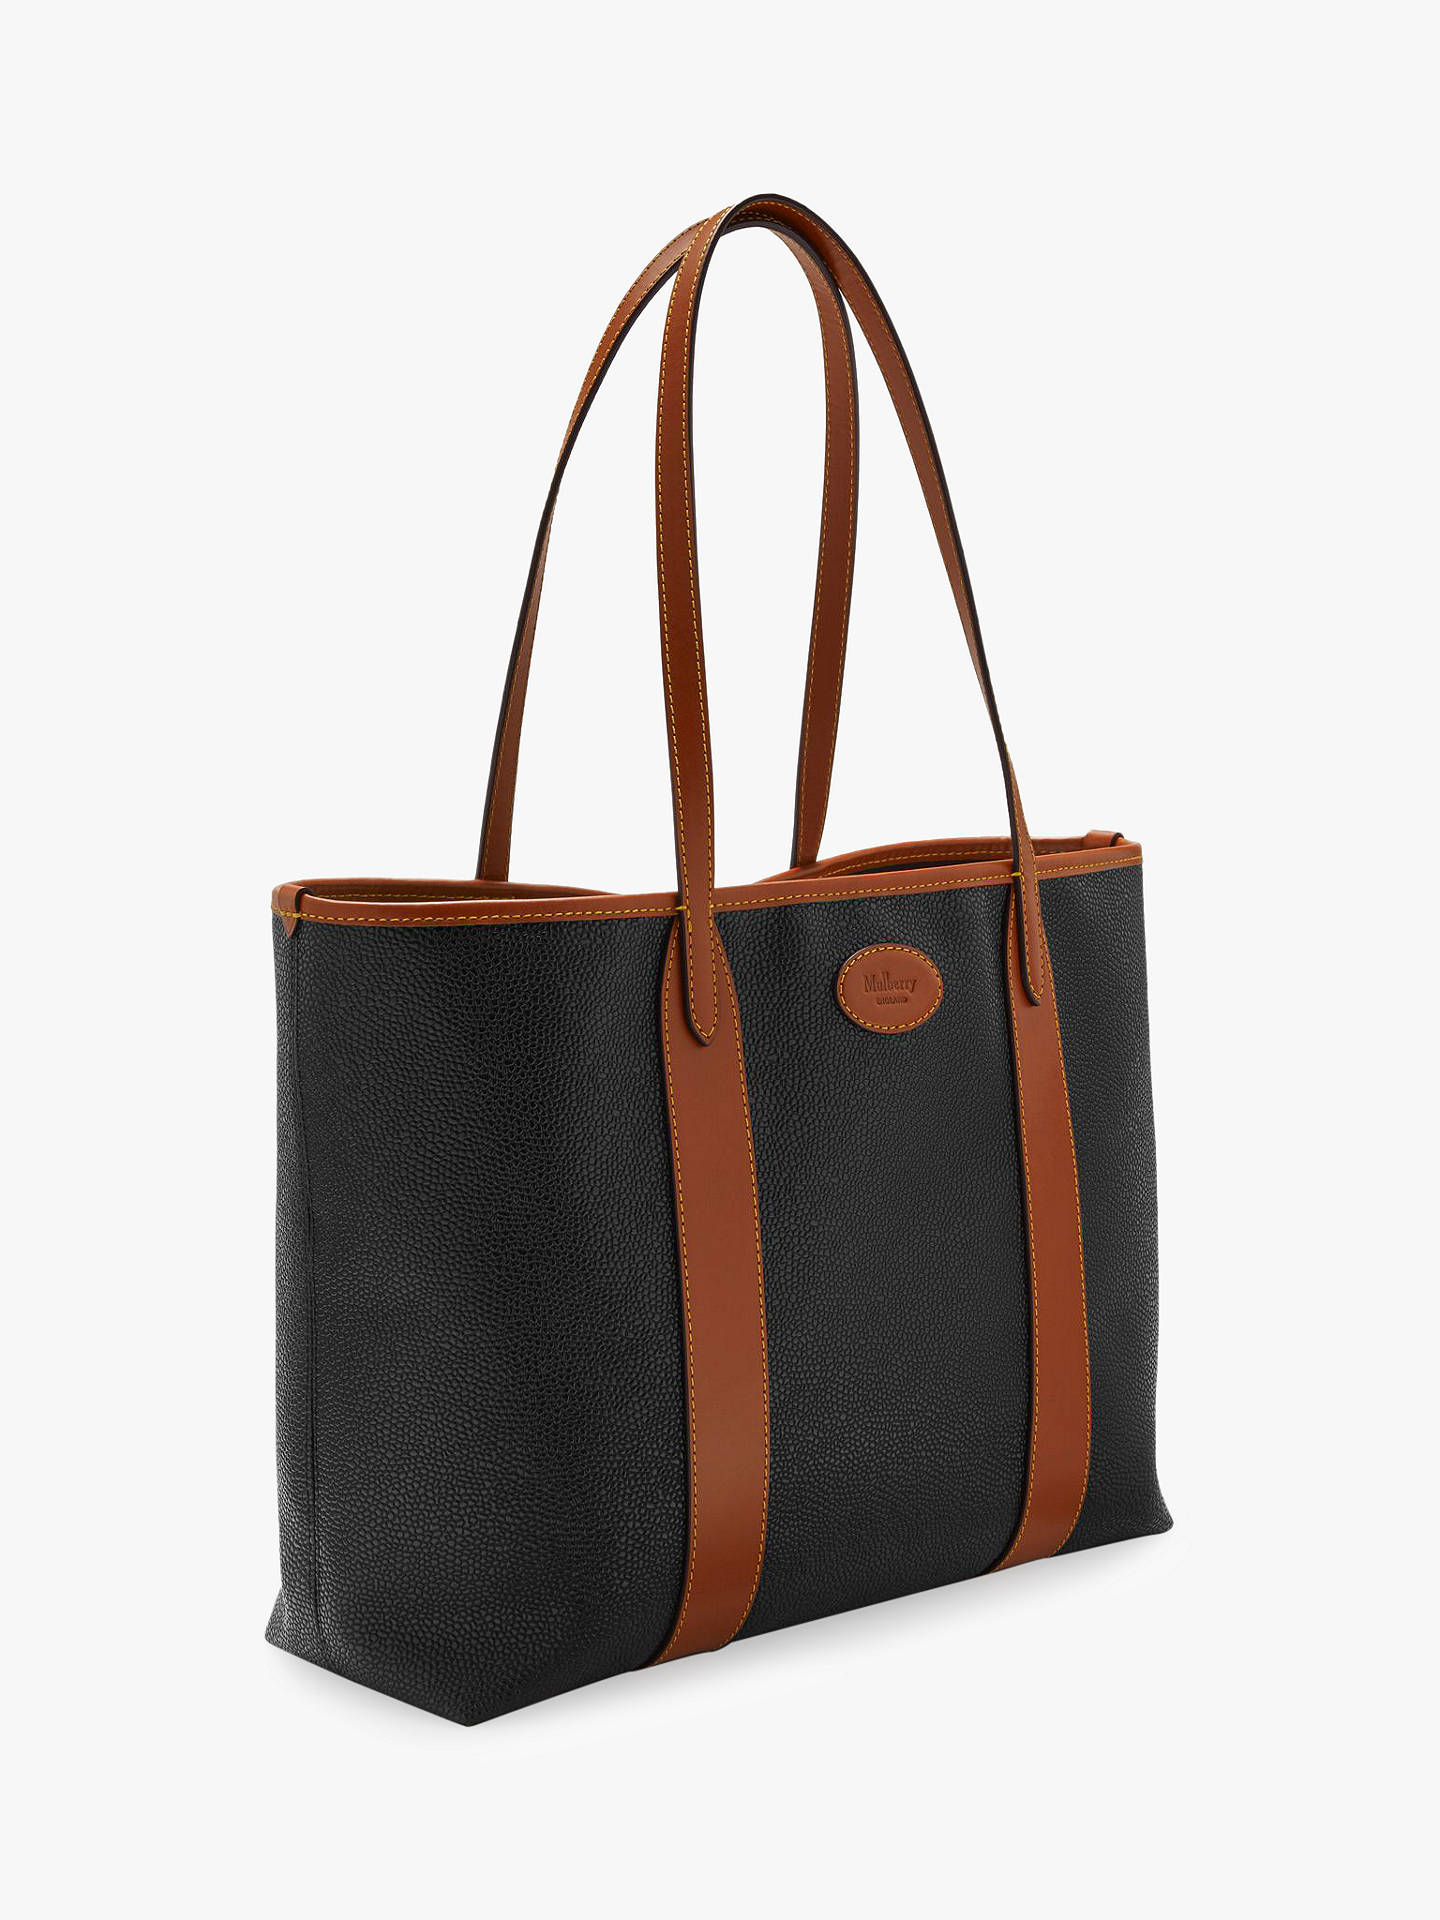 aedf9a343390 Mulberry Bayswater Scotchgrain Tote Bag at John Lewis   Partners